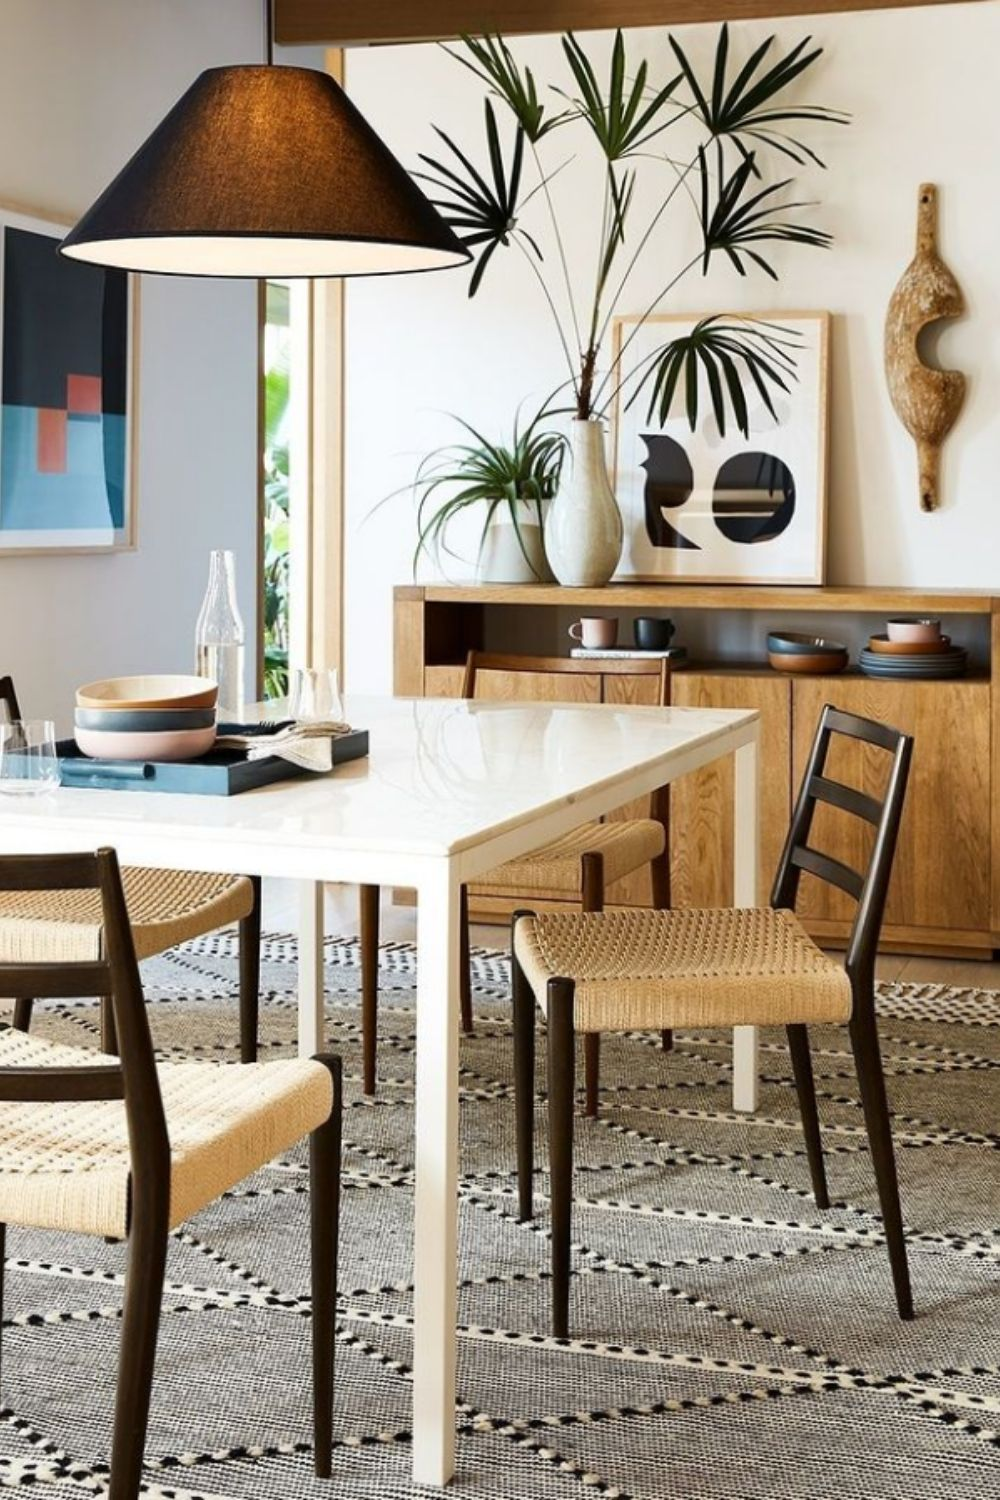 Home Decor Trends You'll See Everywhere